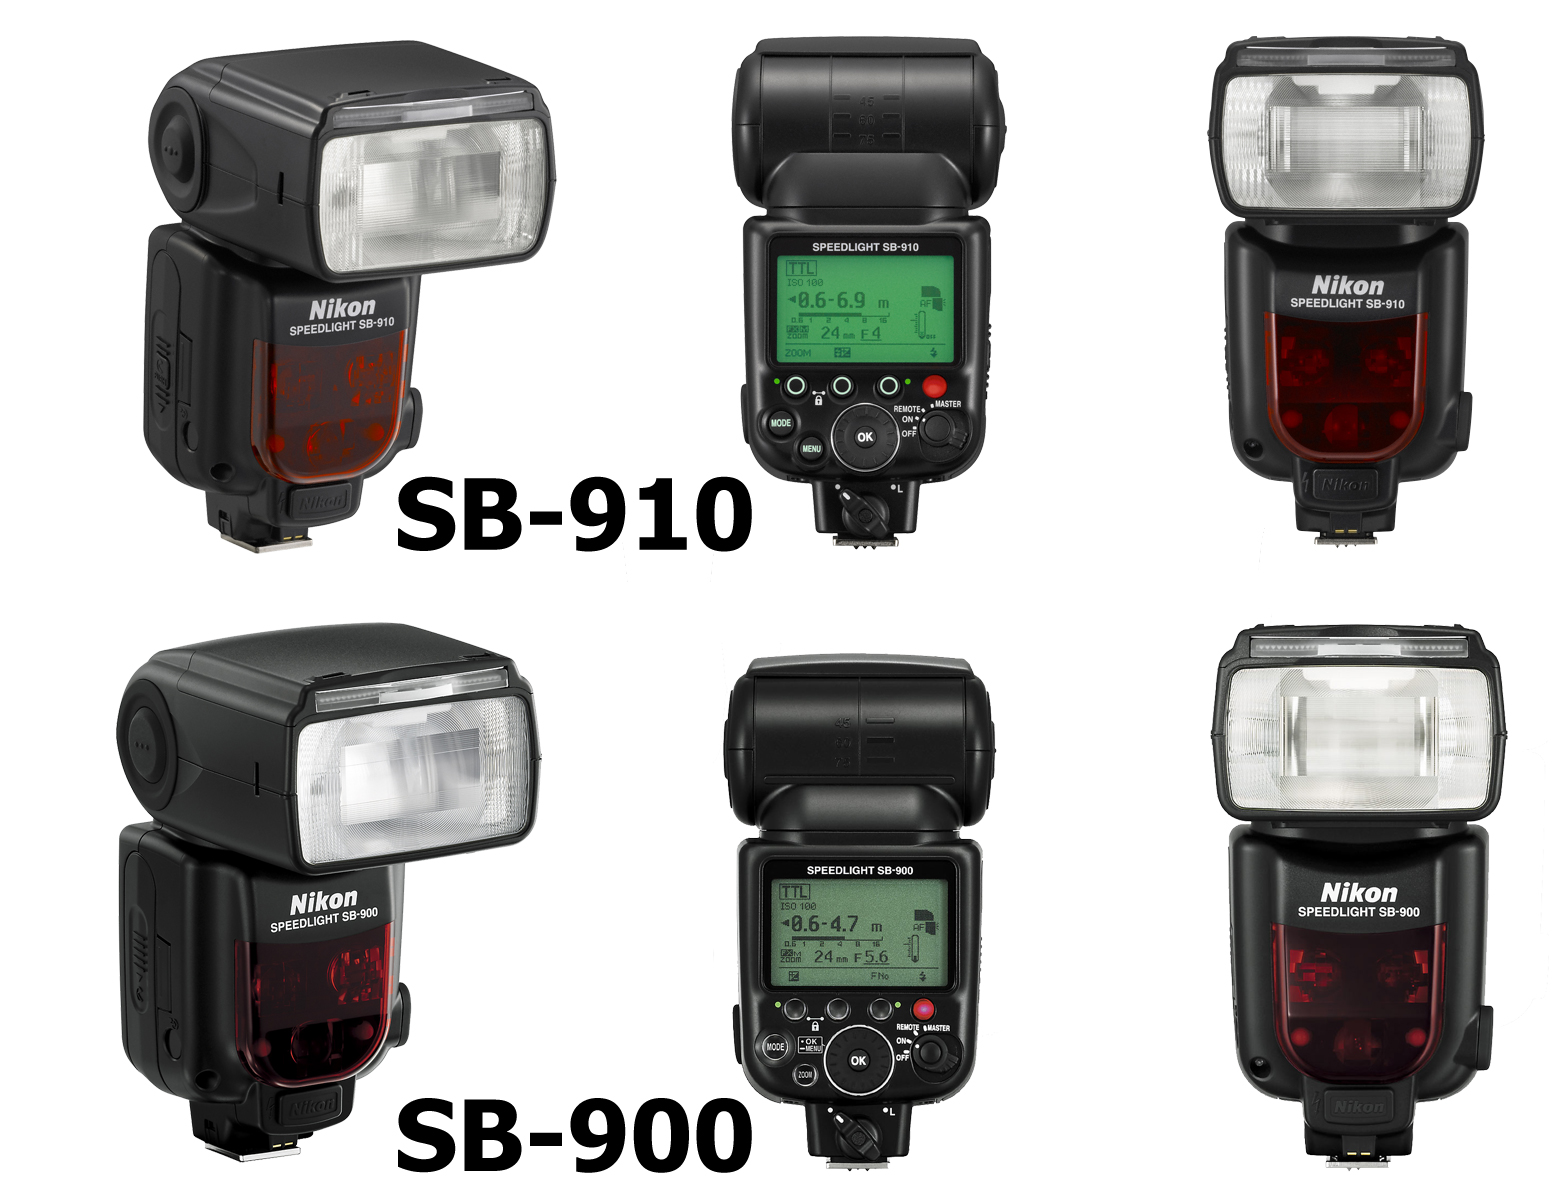 Nikon SB-910 and SB-900 side-by-side